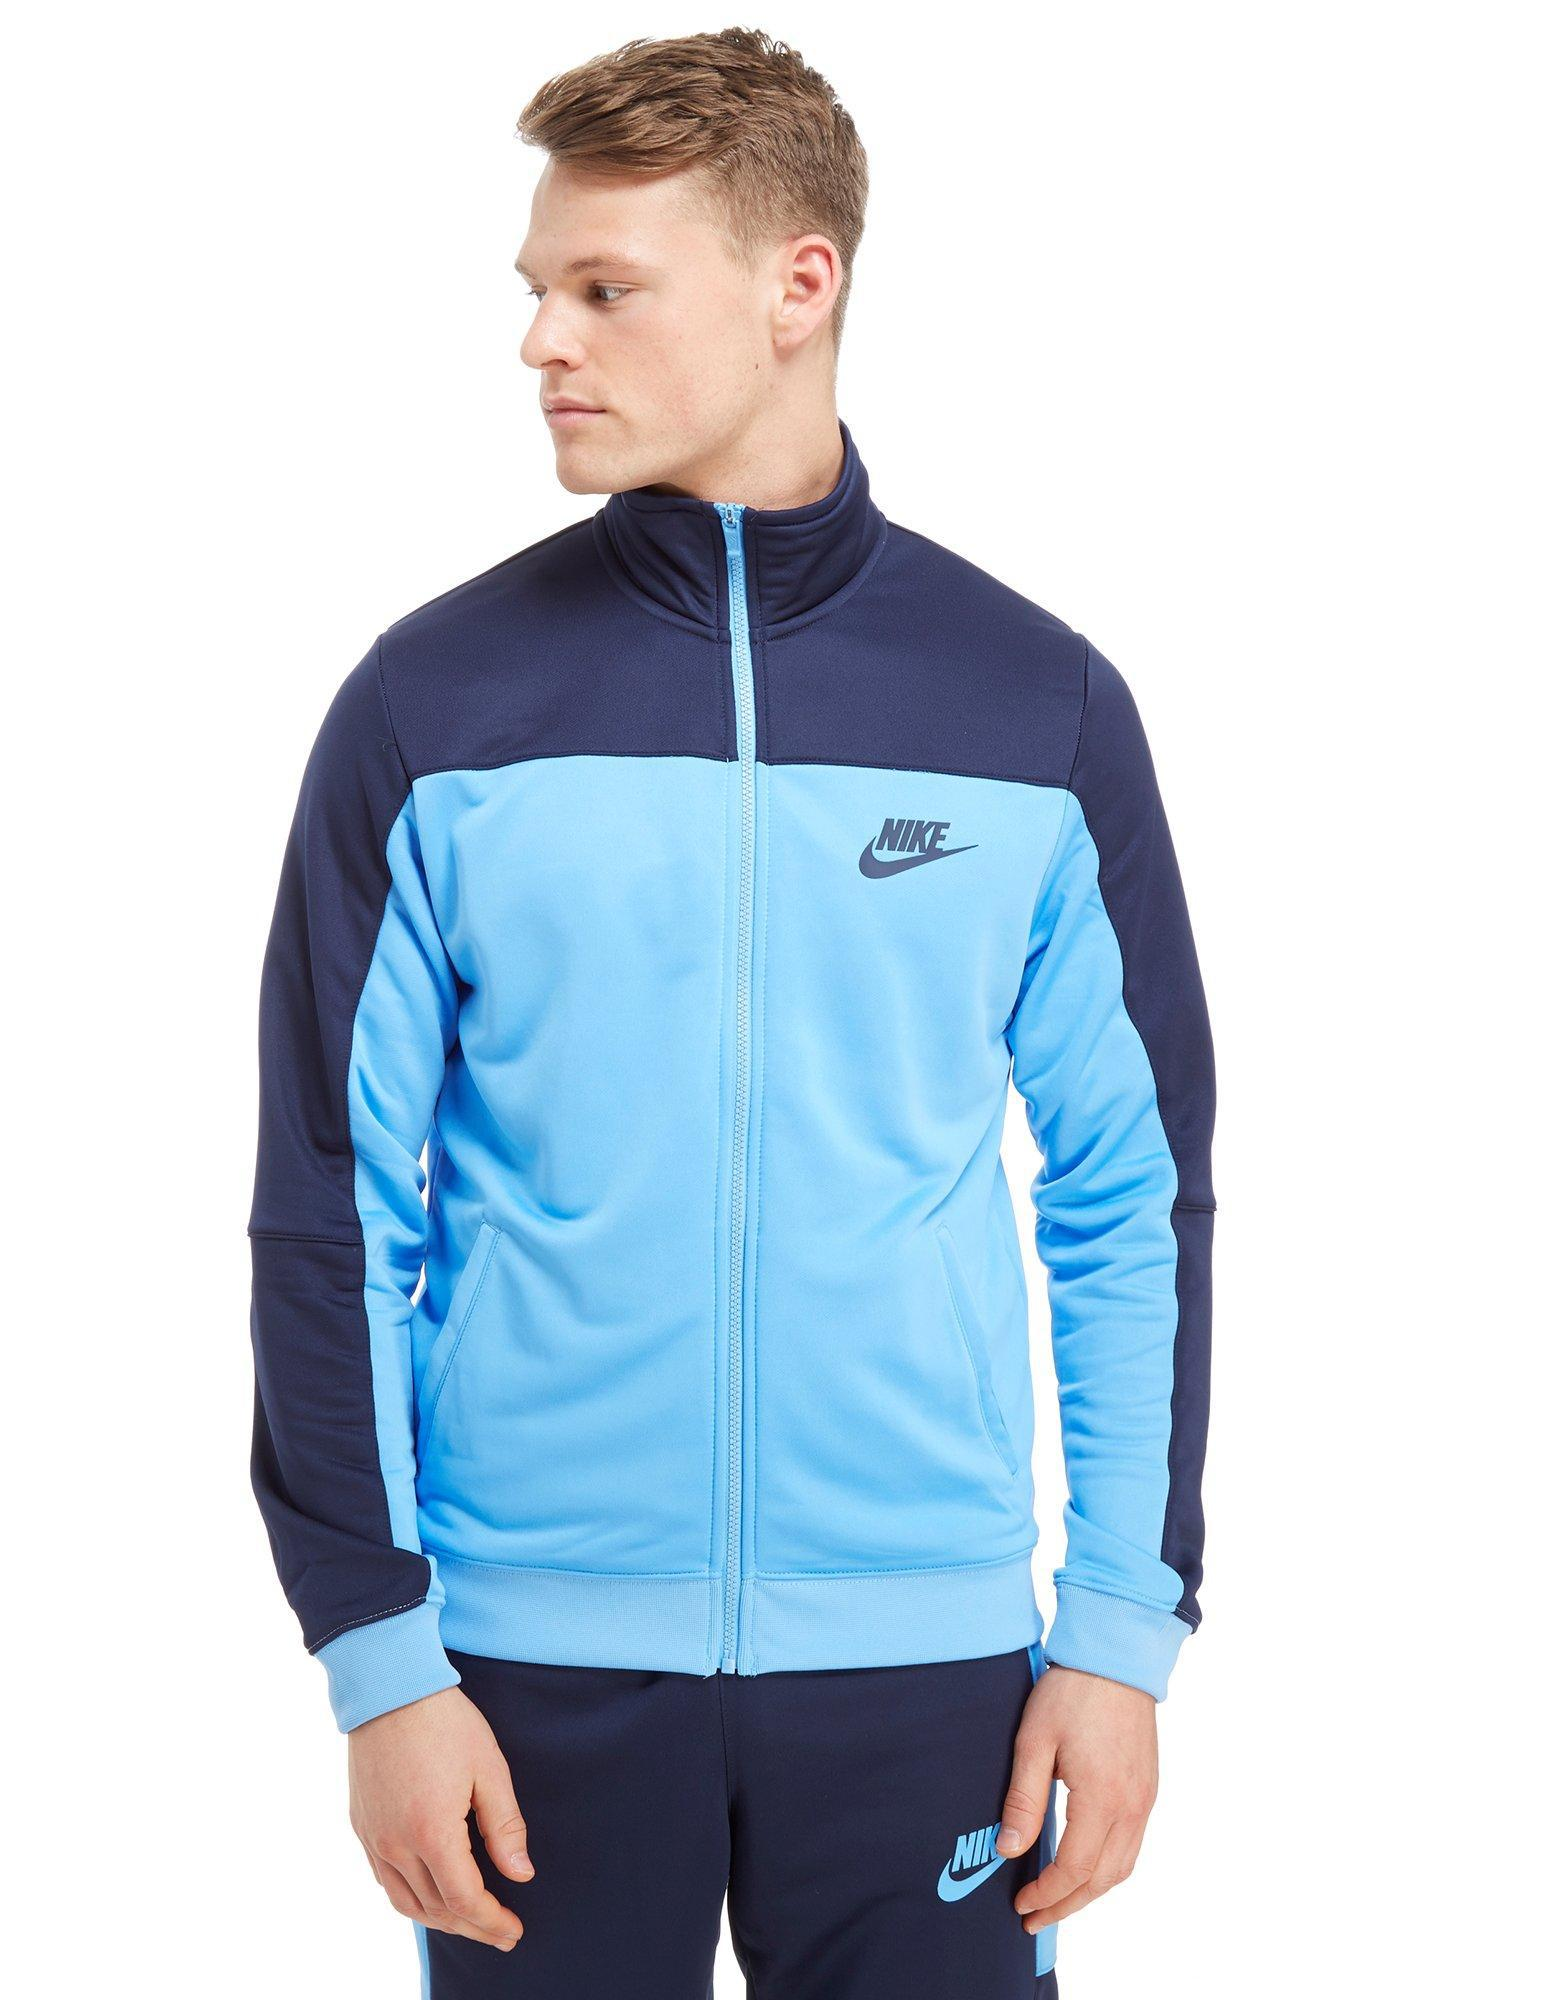 86f377a3f65d Nike Season Colourblock Poly Track Top in Blue for Men - Lyst